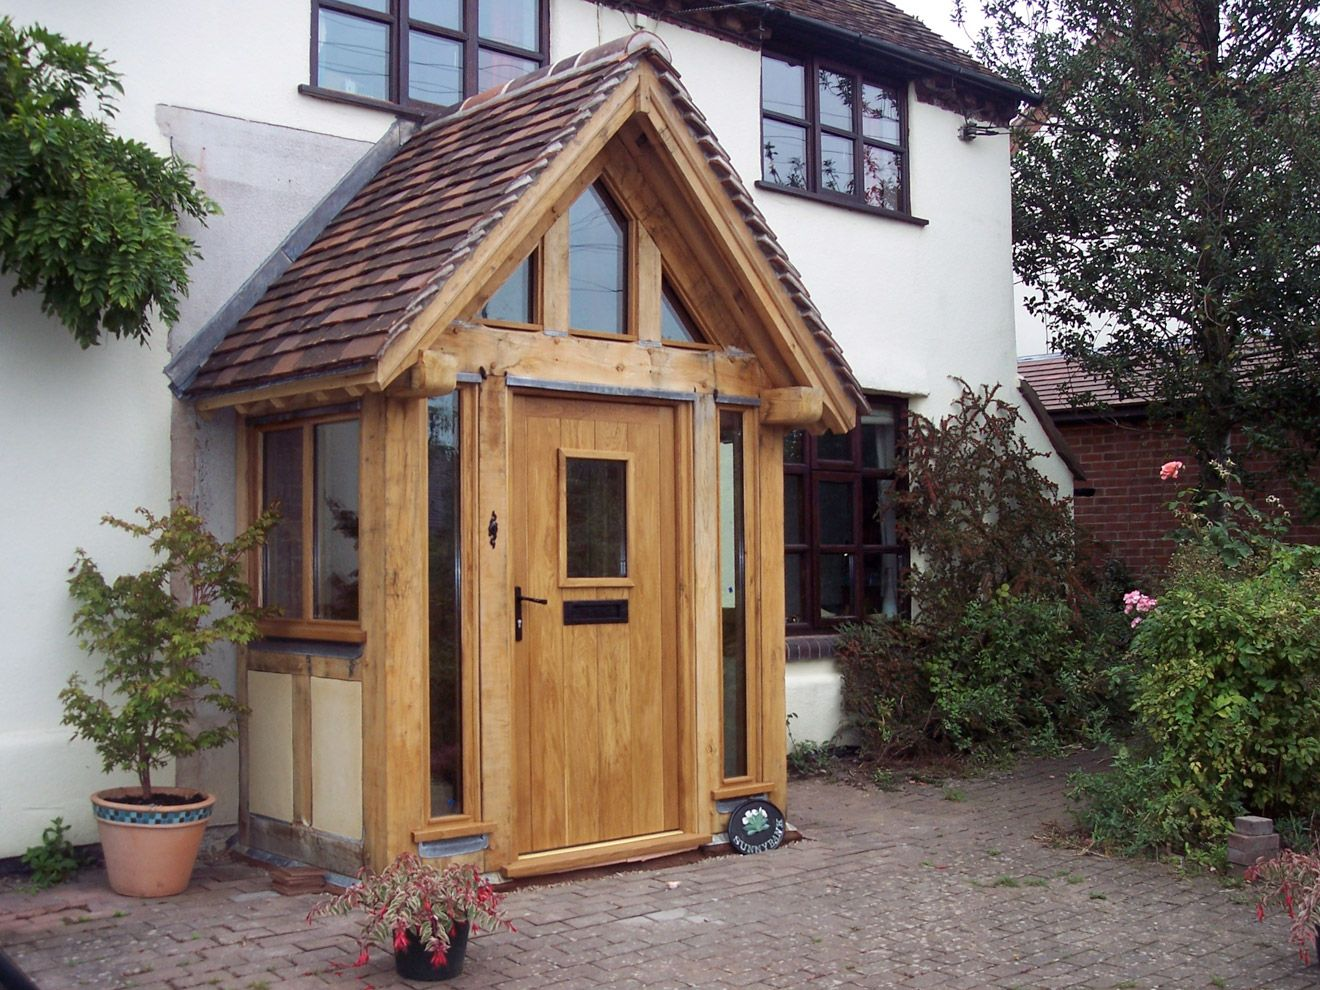 Oak Framed House Designs Of Porches And Sheds Border Oak Oak Framed Houses Oak